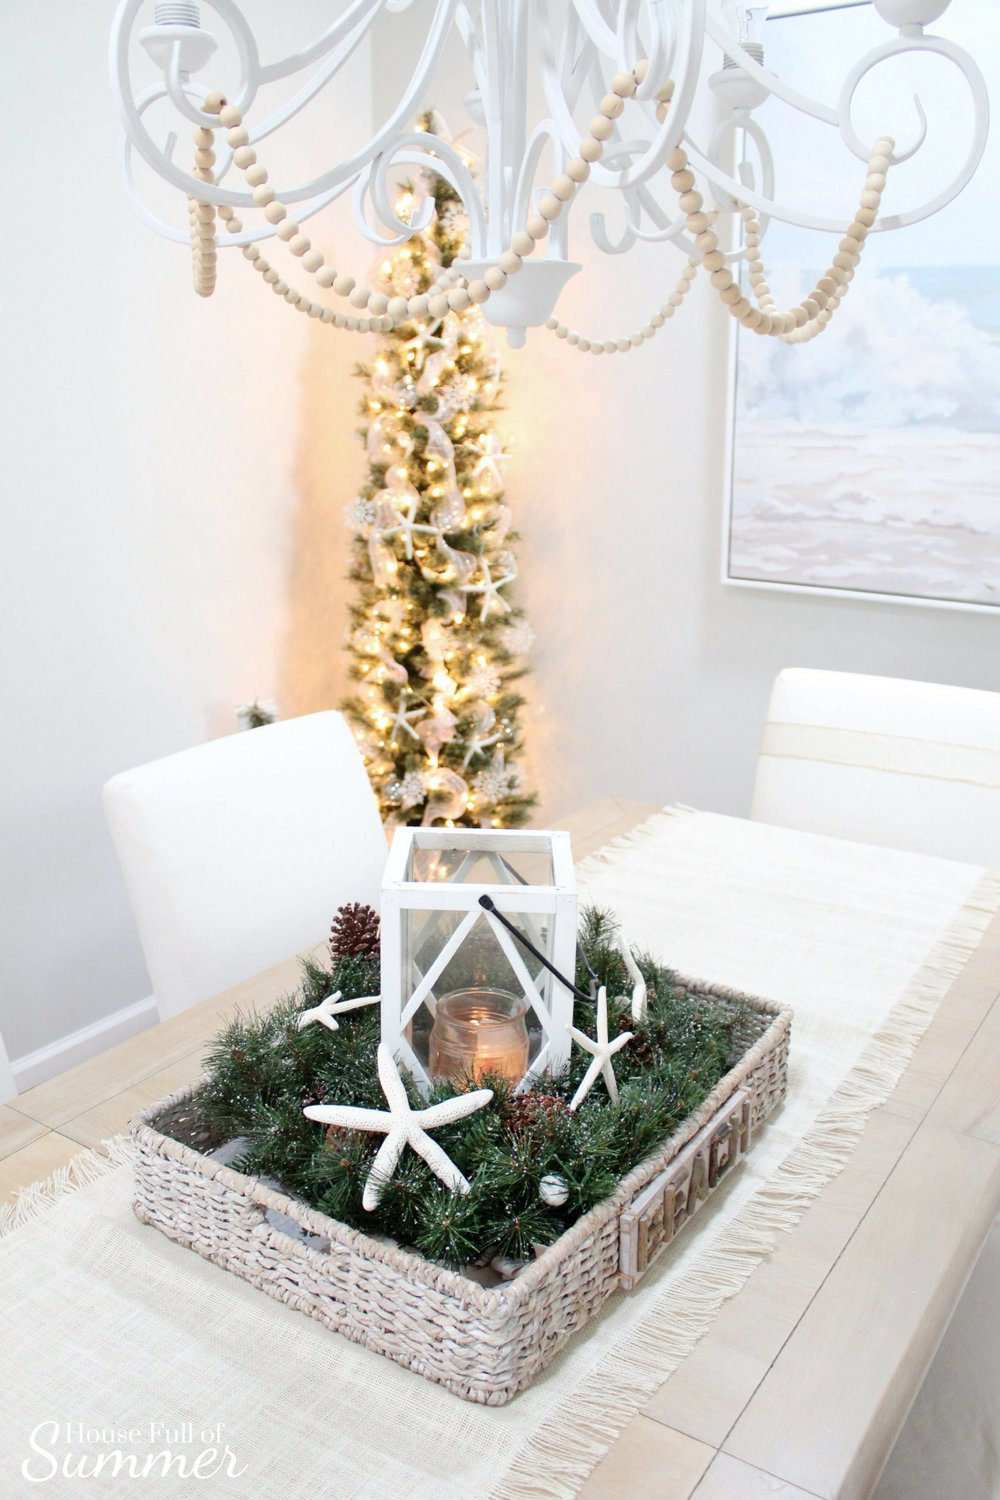 Christmas Home Tour | House Full of Summer blog hop - Cheerful Christmas Home Tourcoastal christmas neutral christmas decor, holiday home tour, florida christmas, extra long table runner, dining room, beach painting